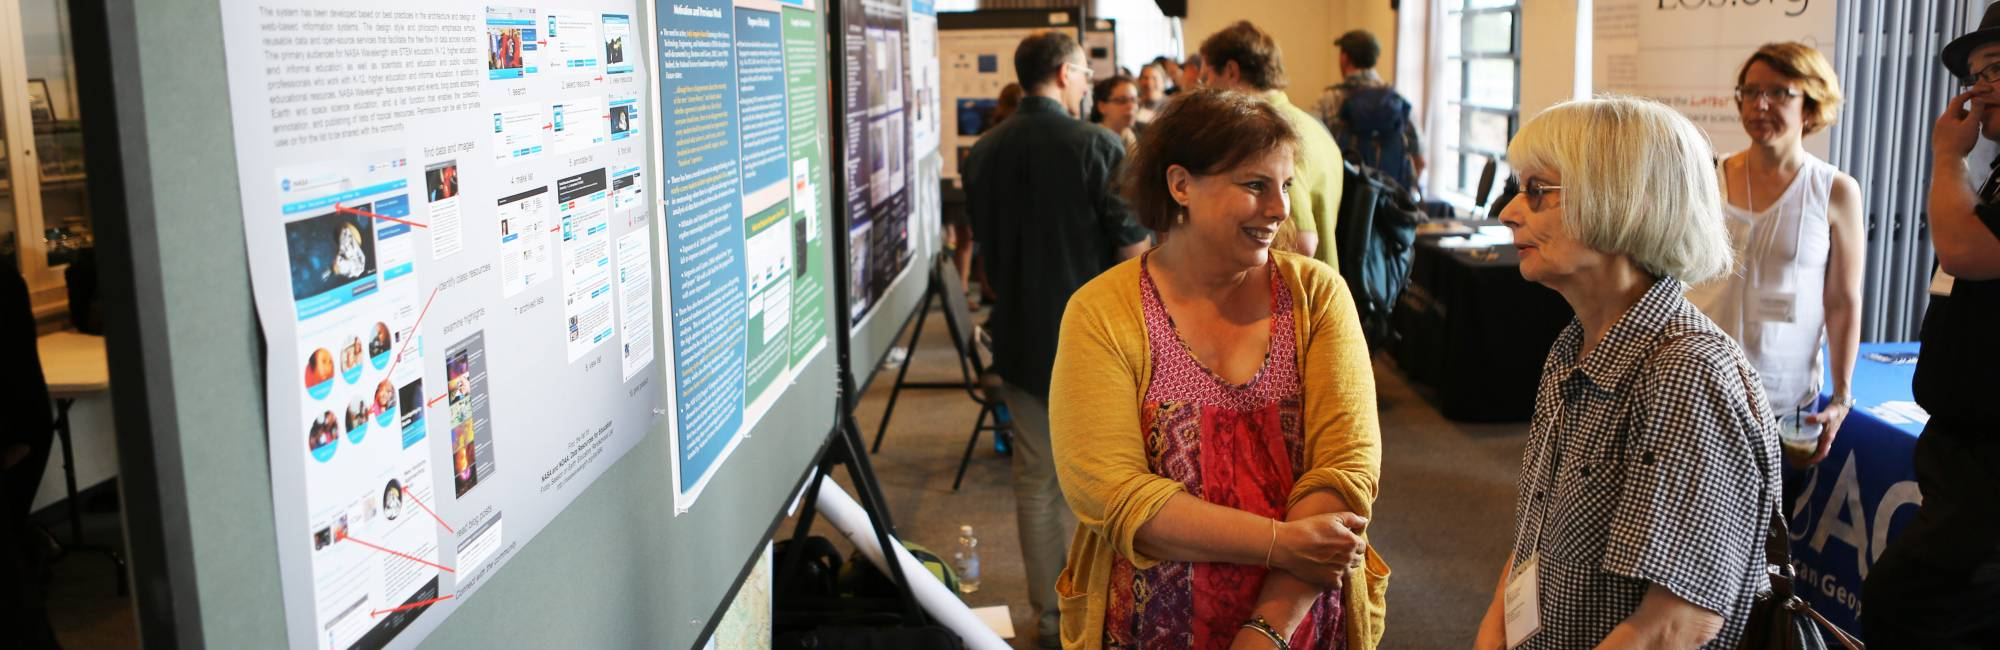 two women talking at a science poster